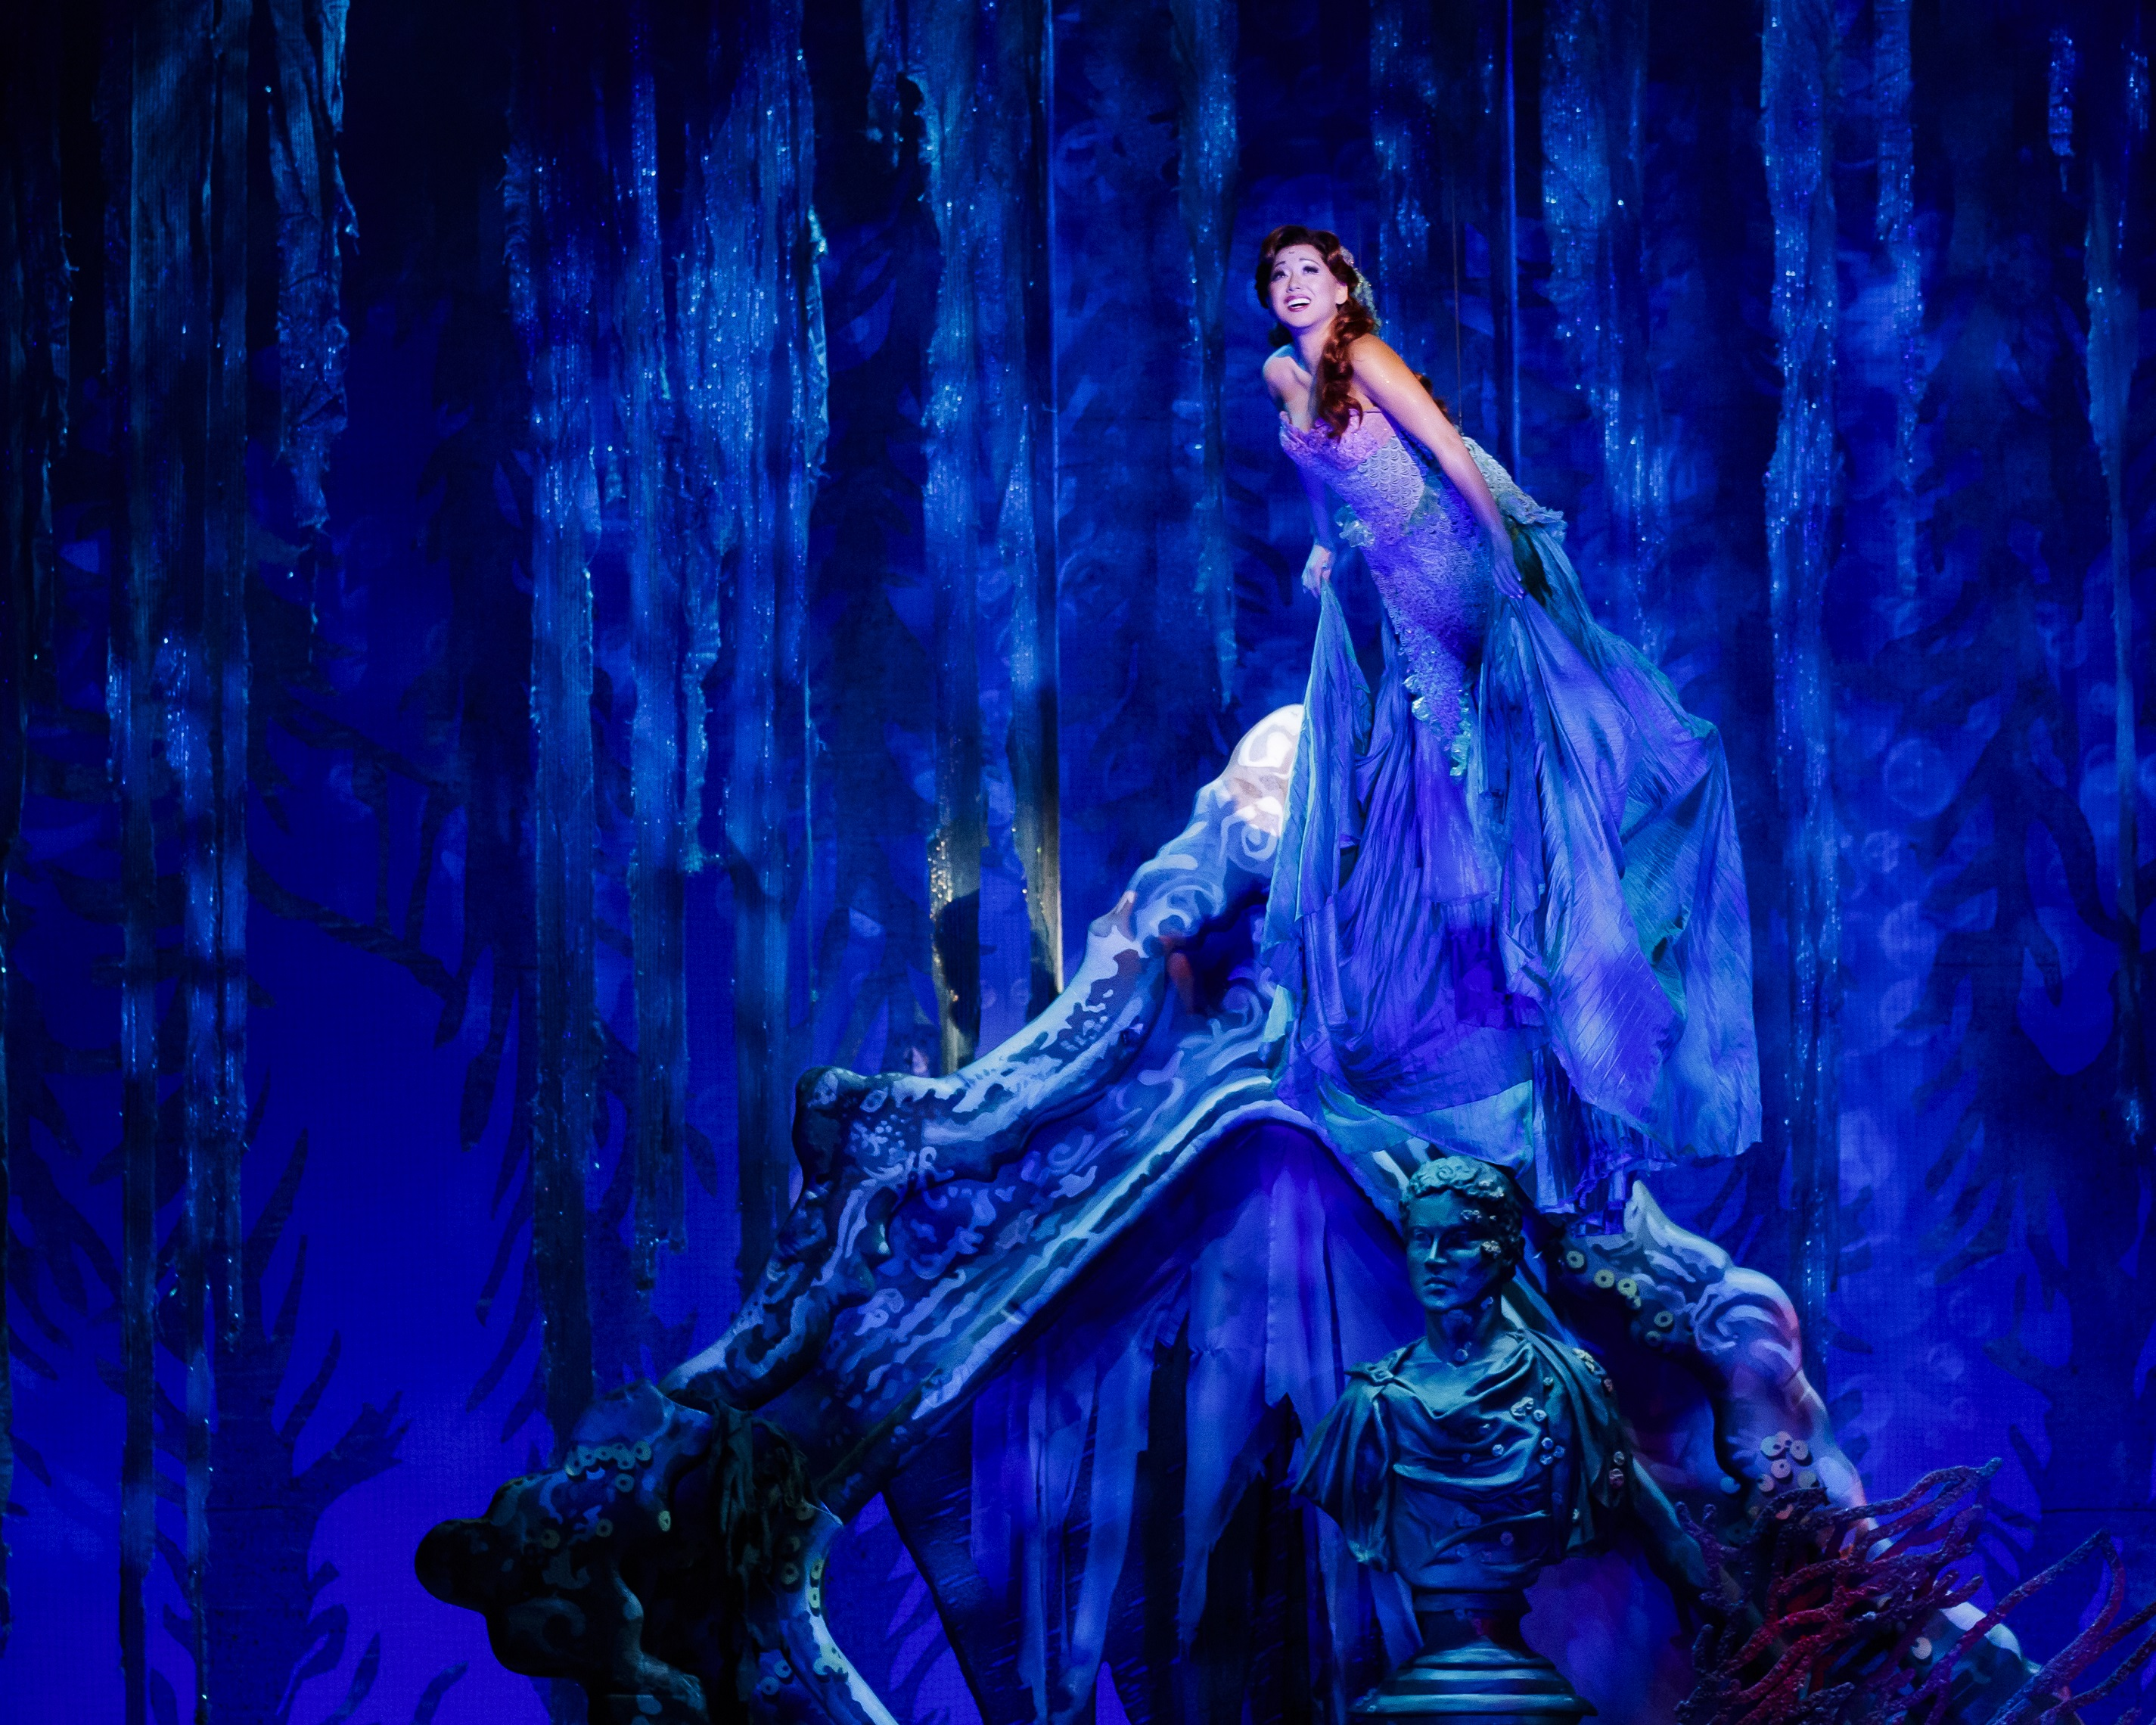 BWW Review: Spectacular Sets and Special Effects Make THE LITTLE MERMAID Shine